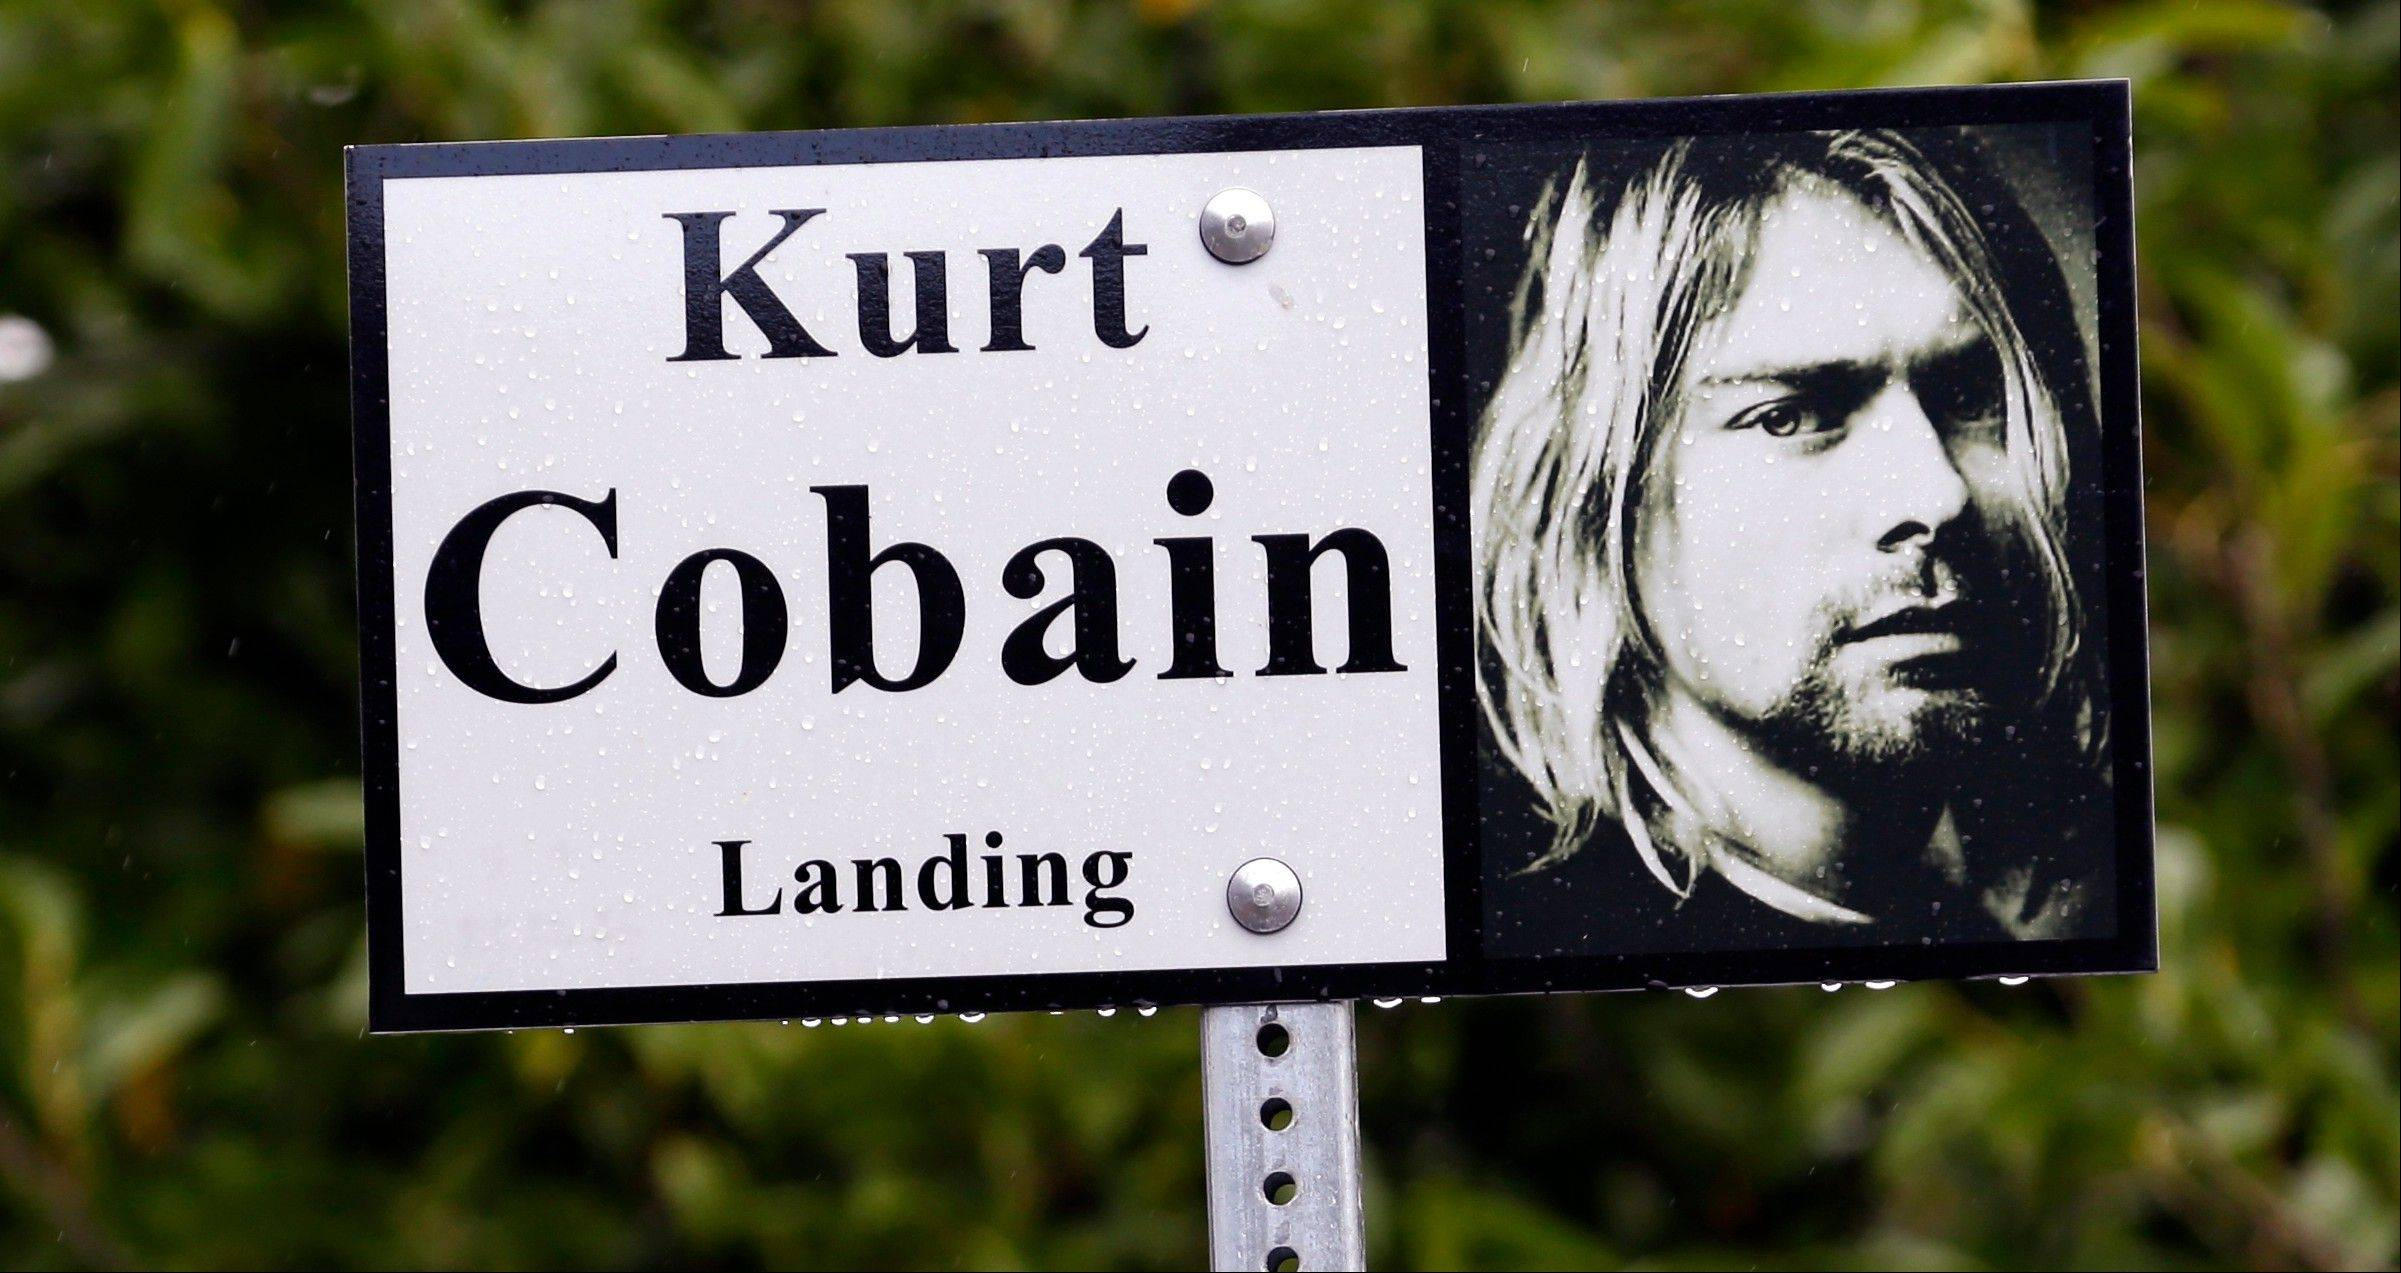 """Kurt Cobain Landing,"" a tiny park blocks from the childhood home of Kurt Cobain, the late frontman of Nirvana, in Aberdeen, Wash."